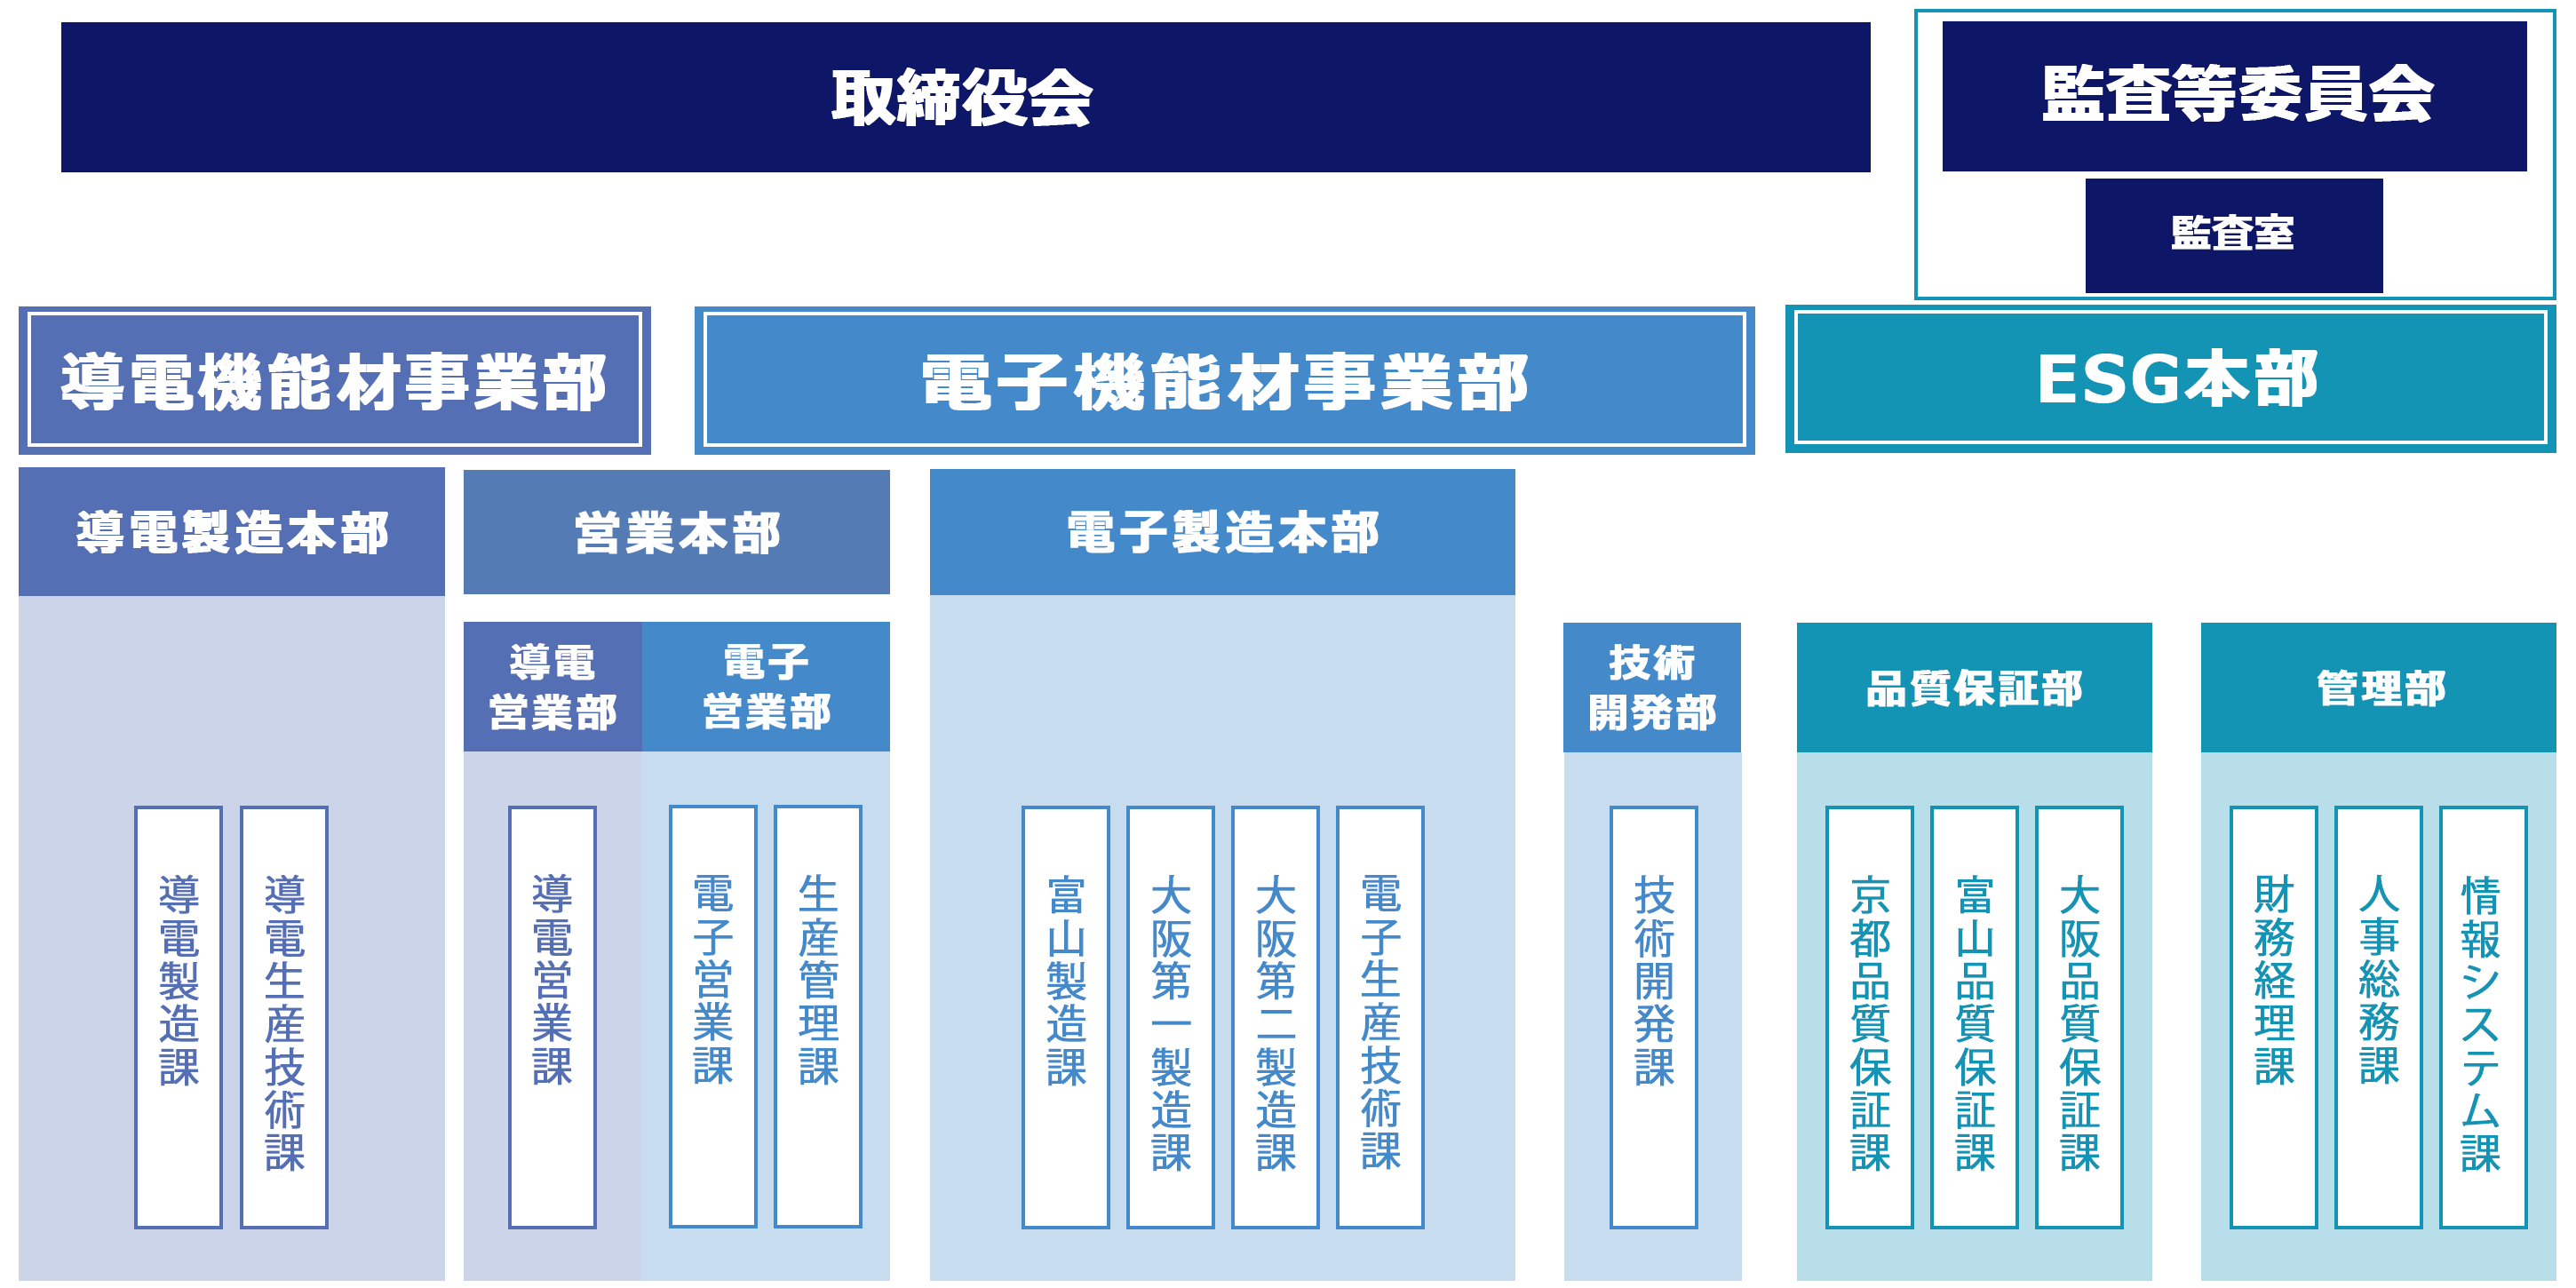 Image of FCM Co., Ltd.'s organizational structure